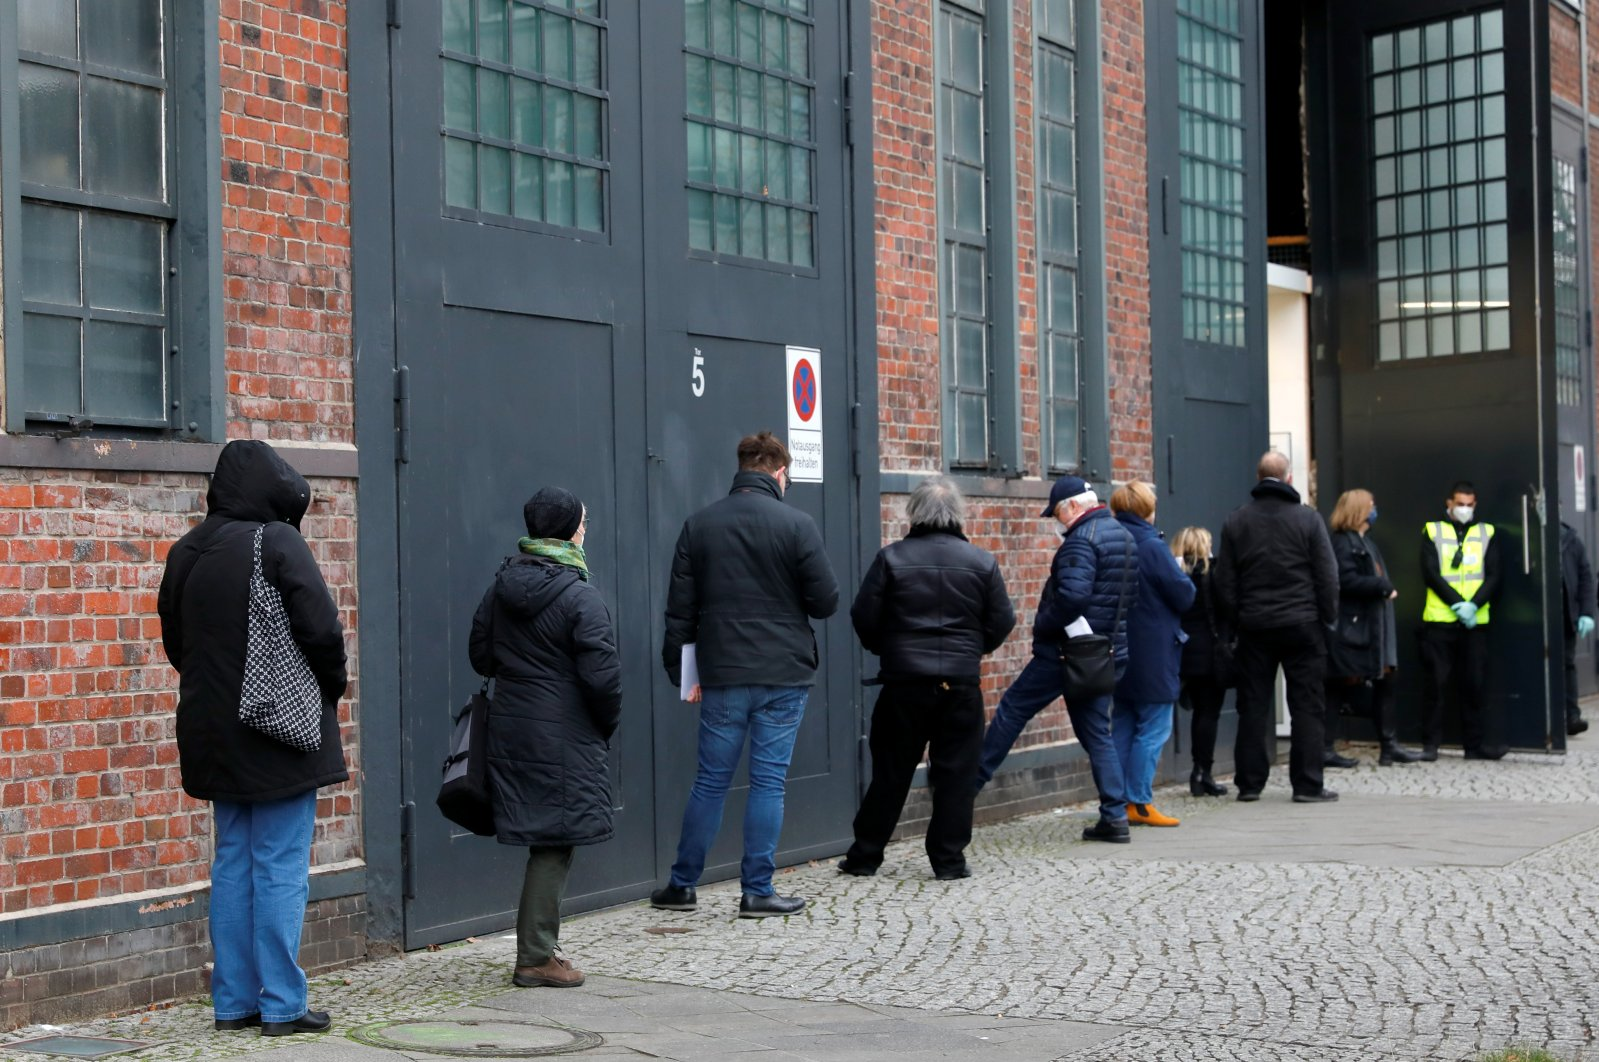 People queue to be vaccinated with the Pfizer-BioNTech COVID-19 vaccine at a COVID-19 vaccination center in Berlin, Germany, Dec. 26, 2020. REUTERS